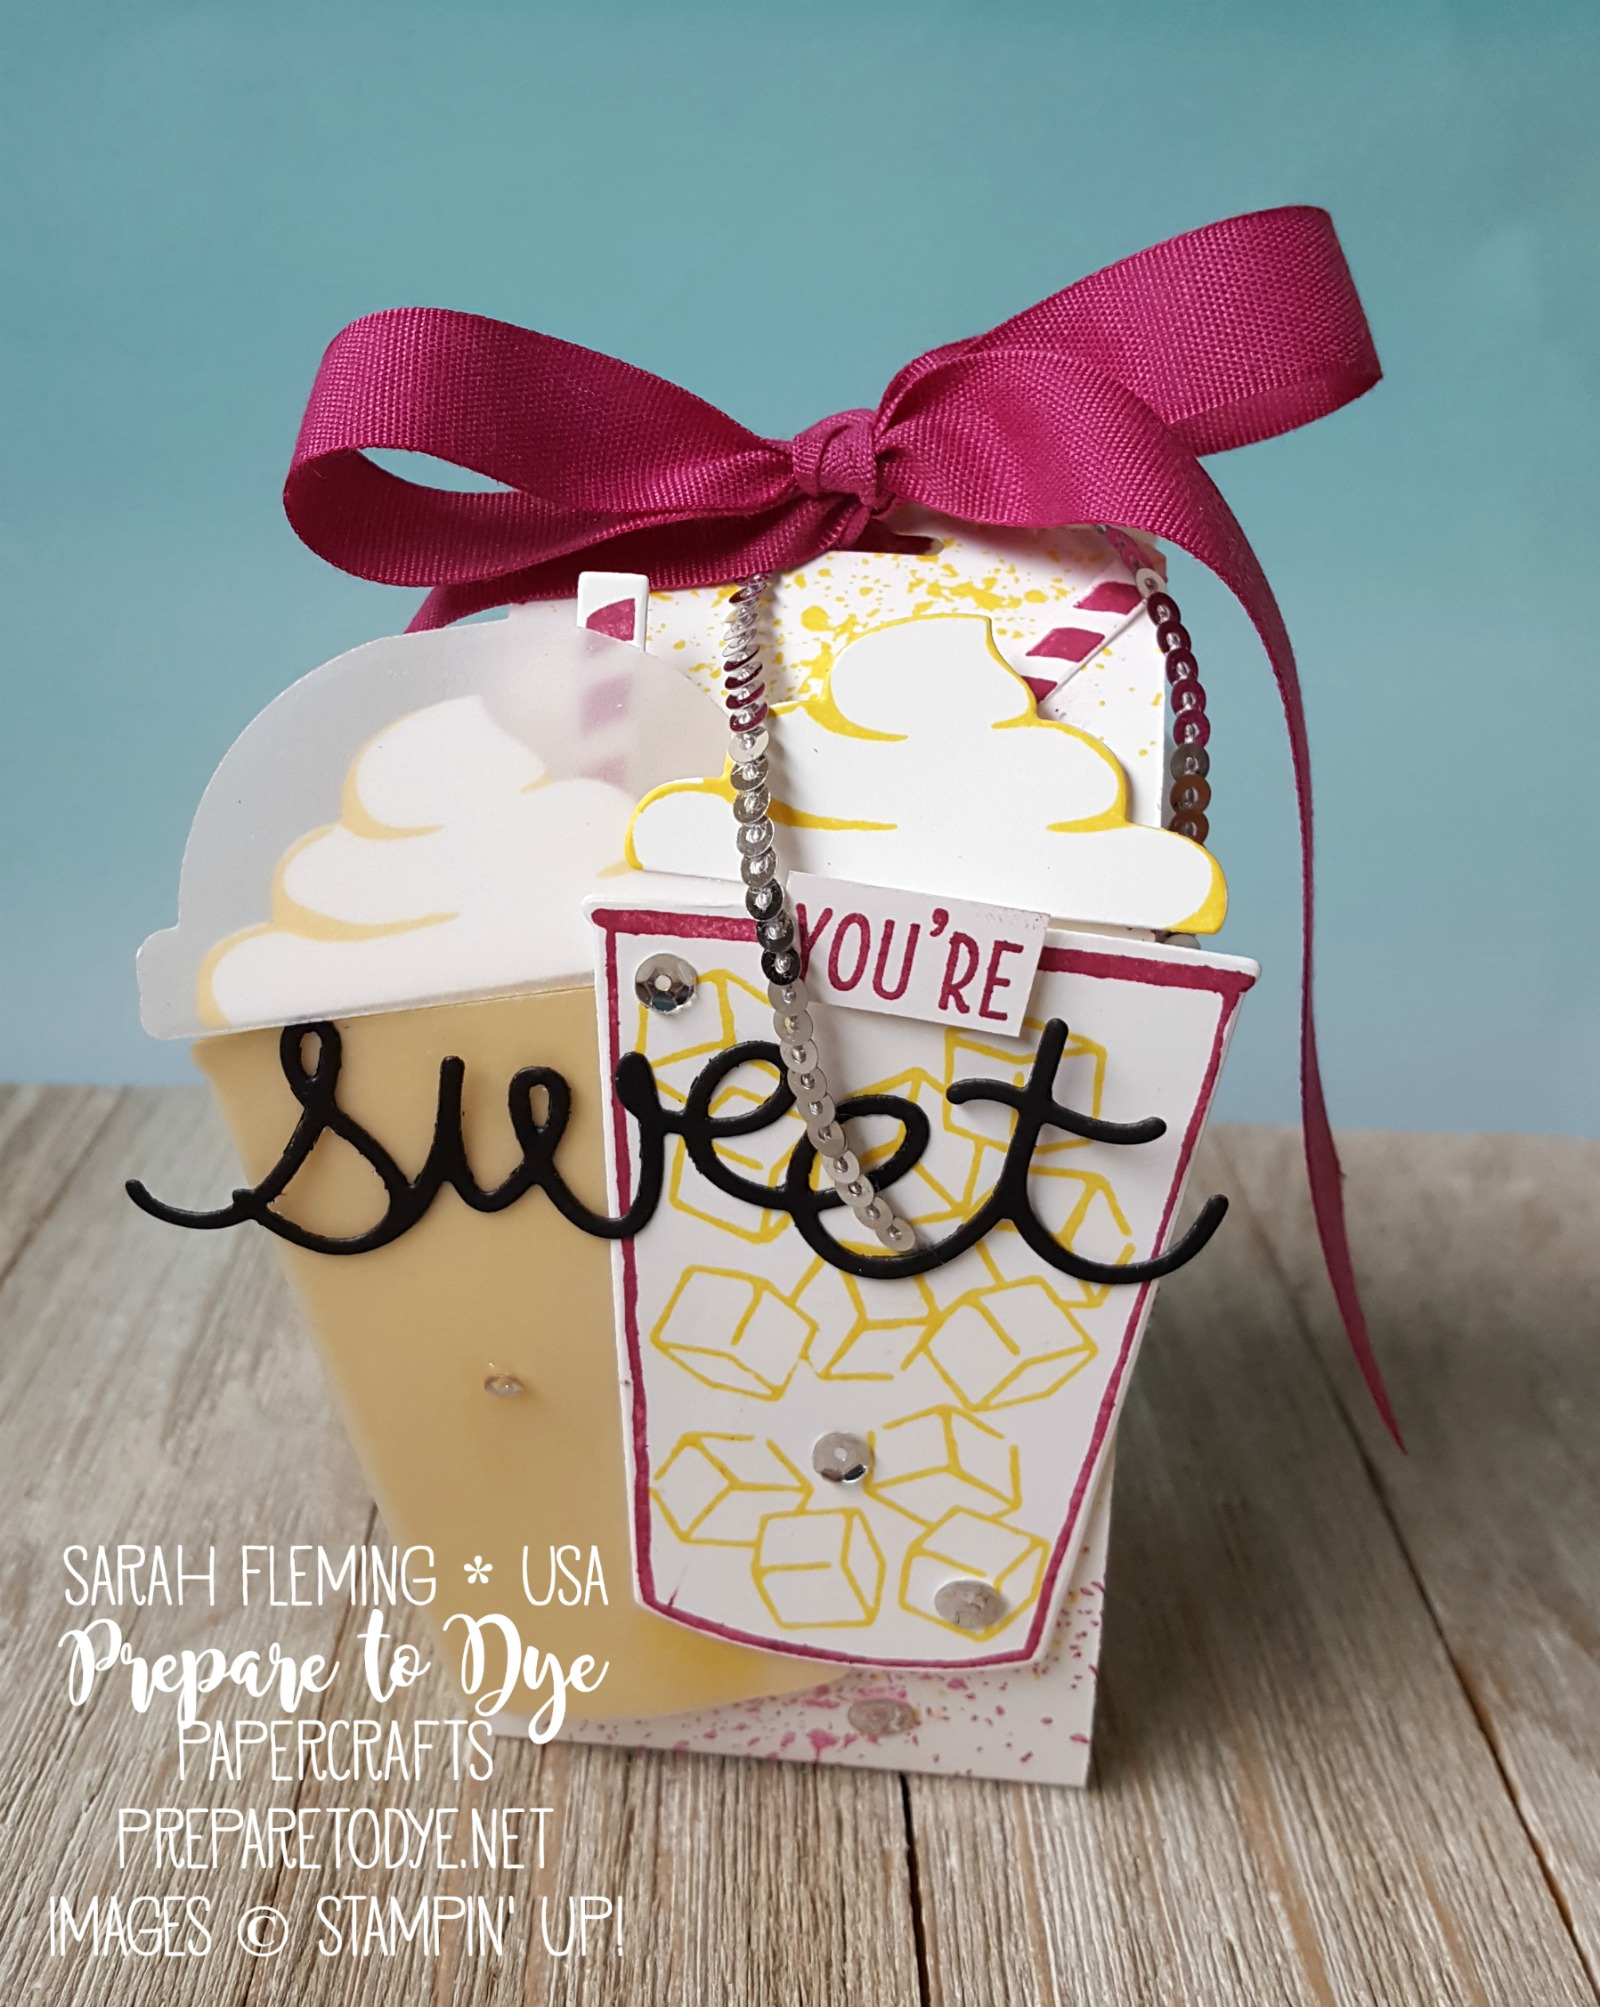 Stampin' Up! Coffee Cafe bundle with Cool Treats, Cupcake Cutout thinlits, Coffee Cups framelits - treat packaging - teachers gifts - Ice Cubes gum packaging - Sarah Fleming - Prepare to Dye Papercrafts